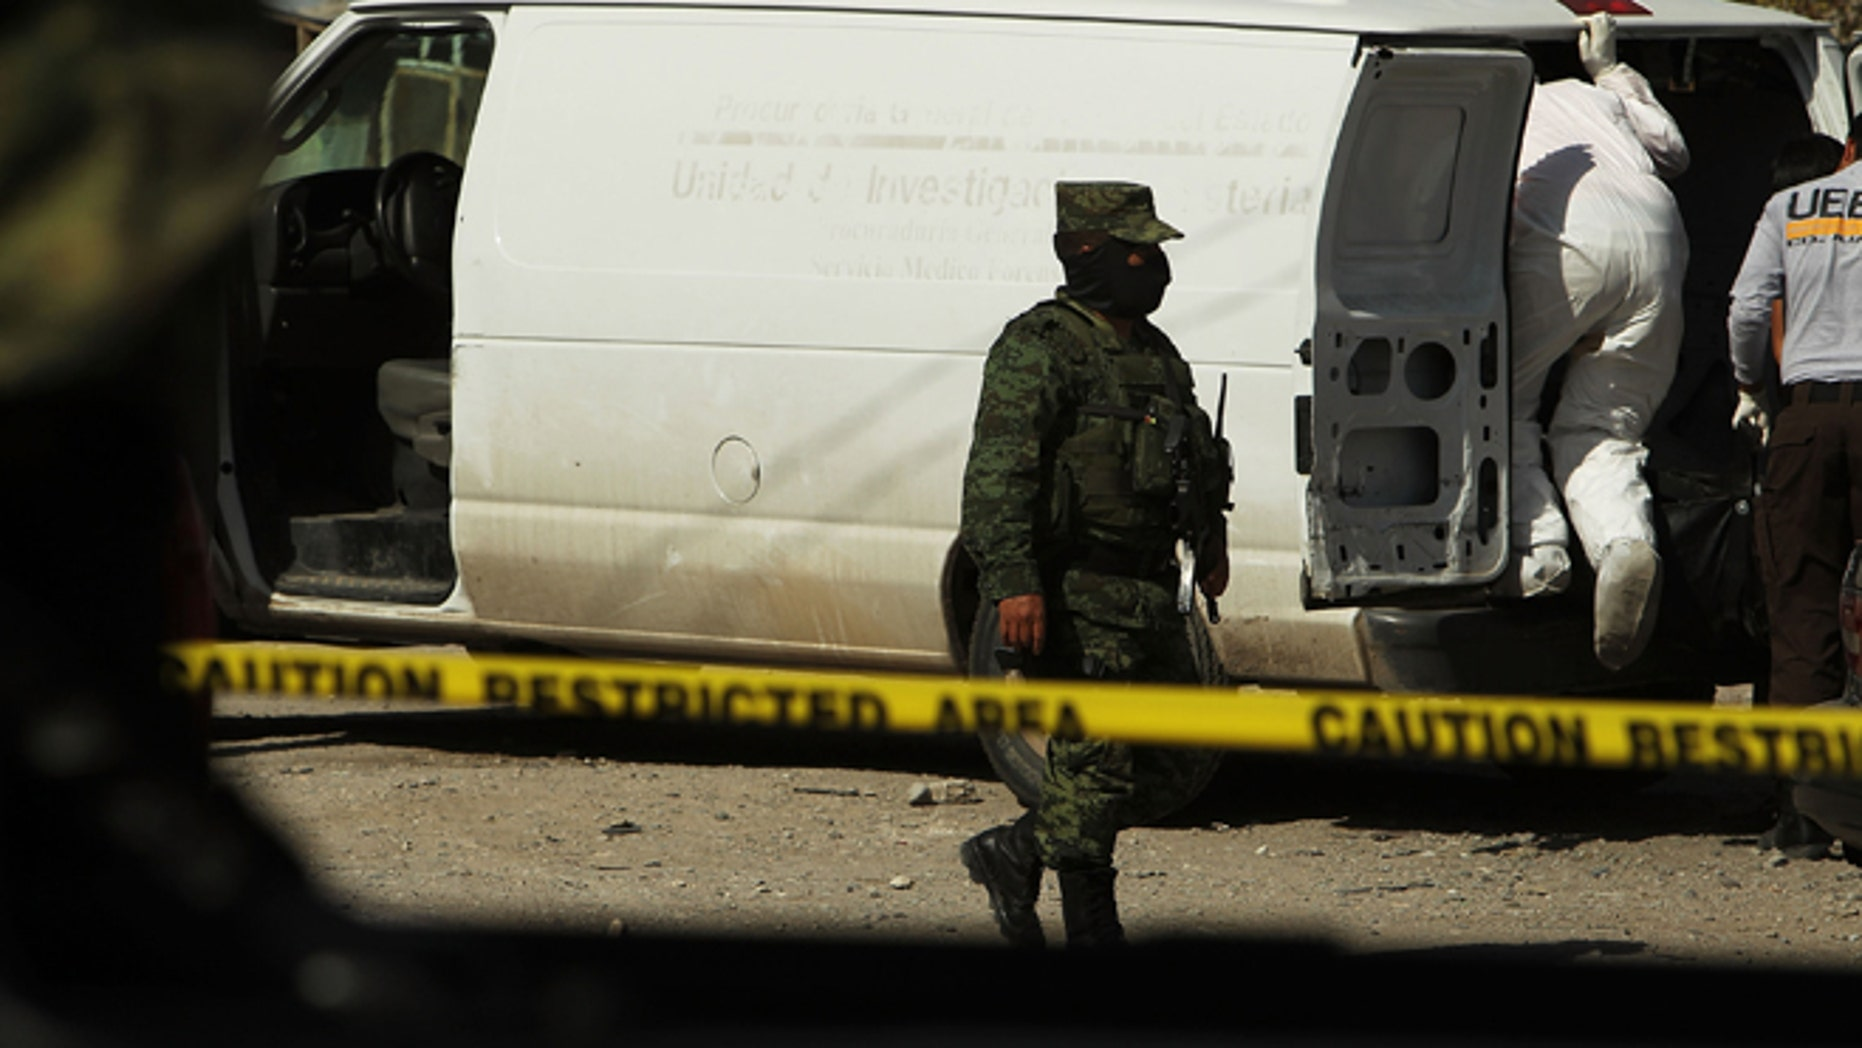 New cartel emerges in Mexico as government dismantles larger drug